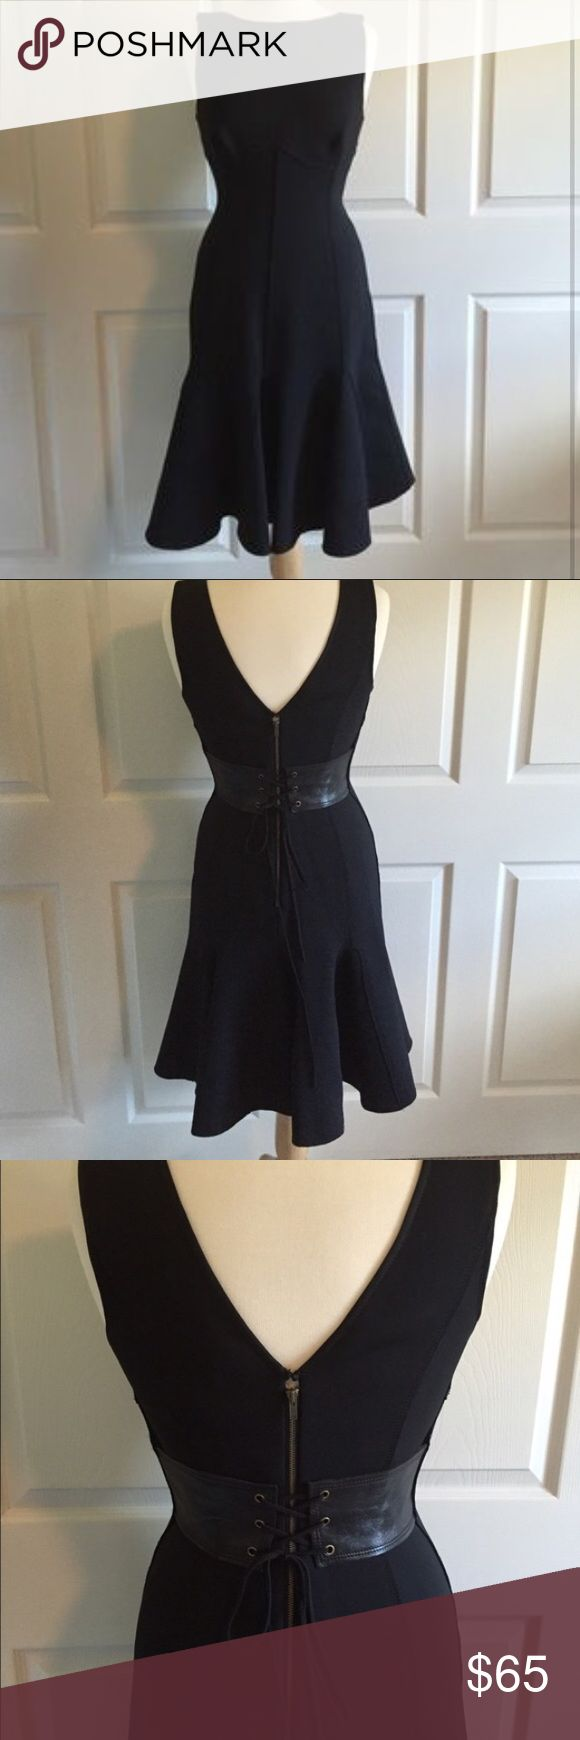 Tracy Reese Black Combo Godet Dress NWT Very cool dress made from neoprene with a leather cincher at the back. Fit and flare style, that's very flattering. Hits just below the knee Tracy Reese Dresses Midi